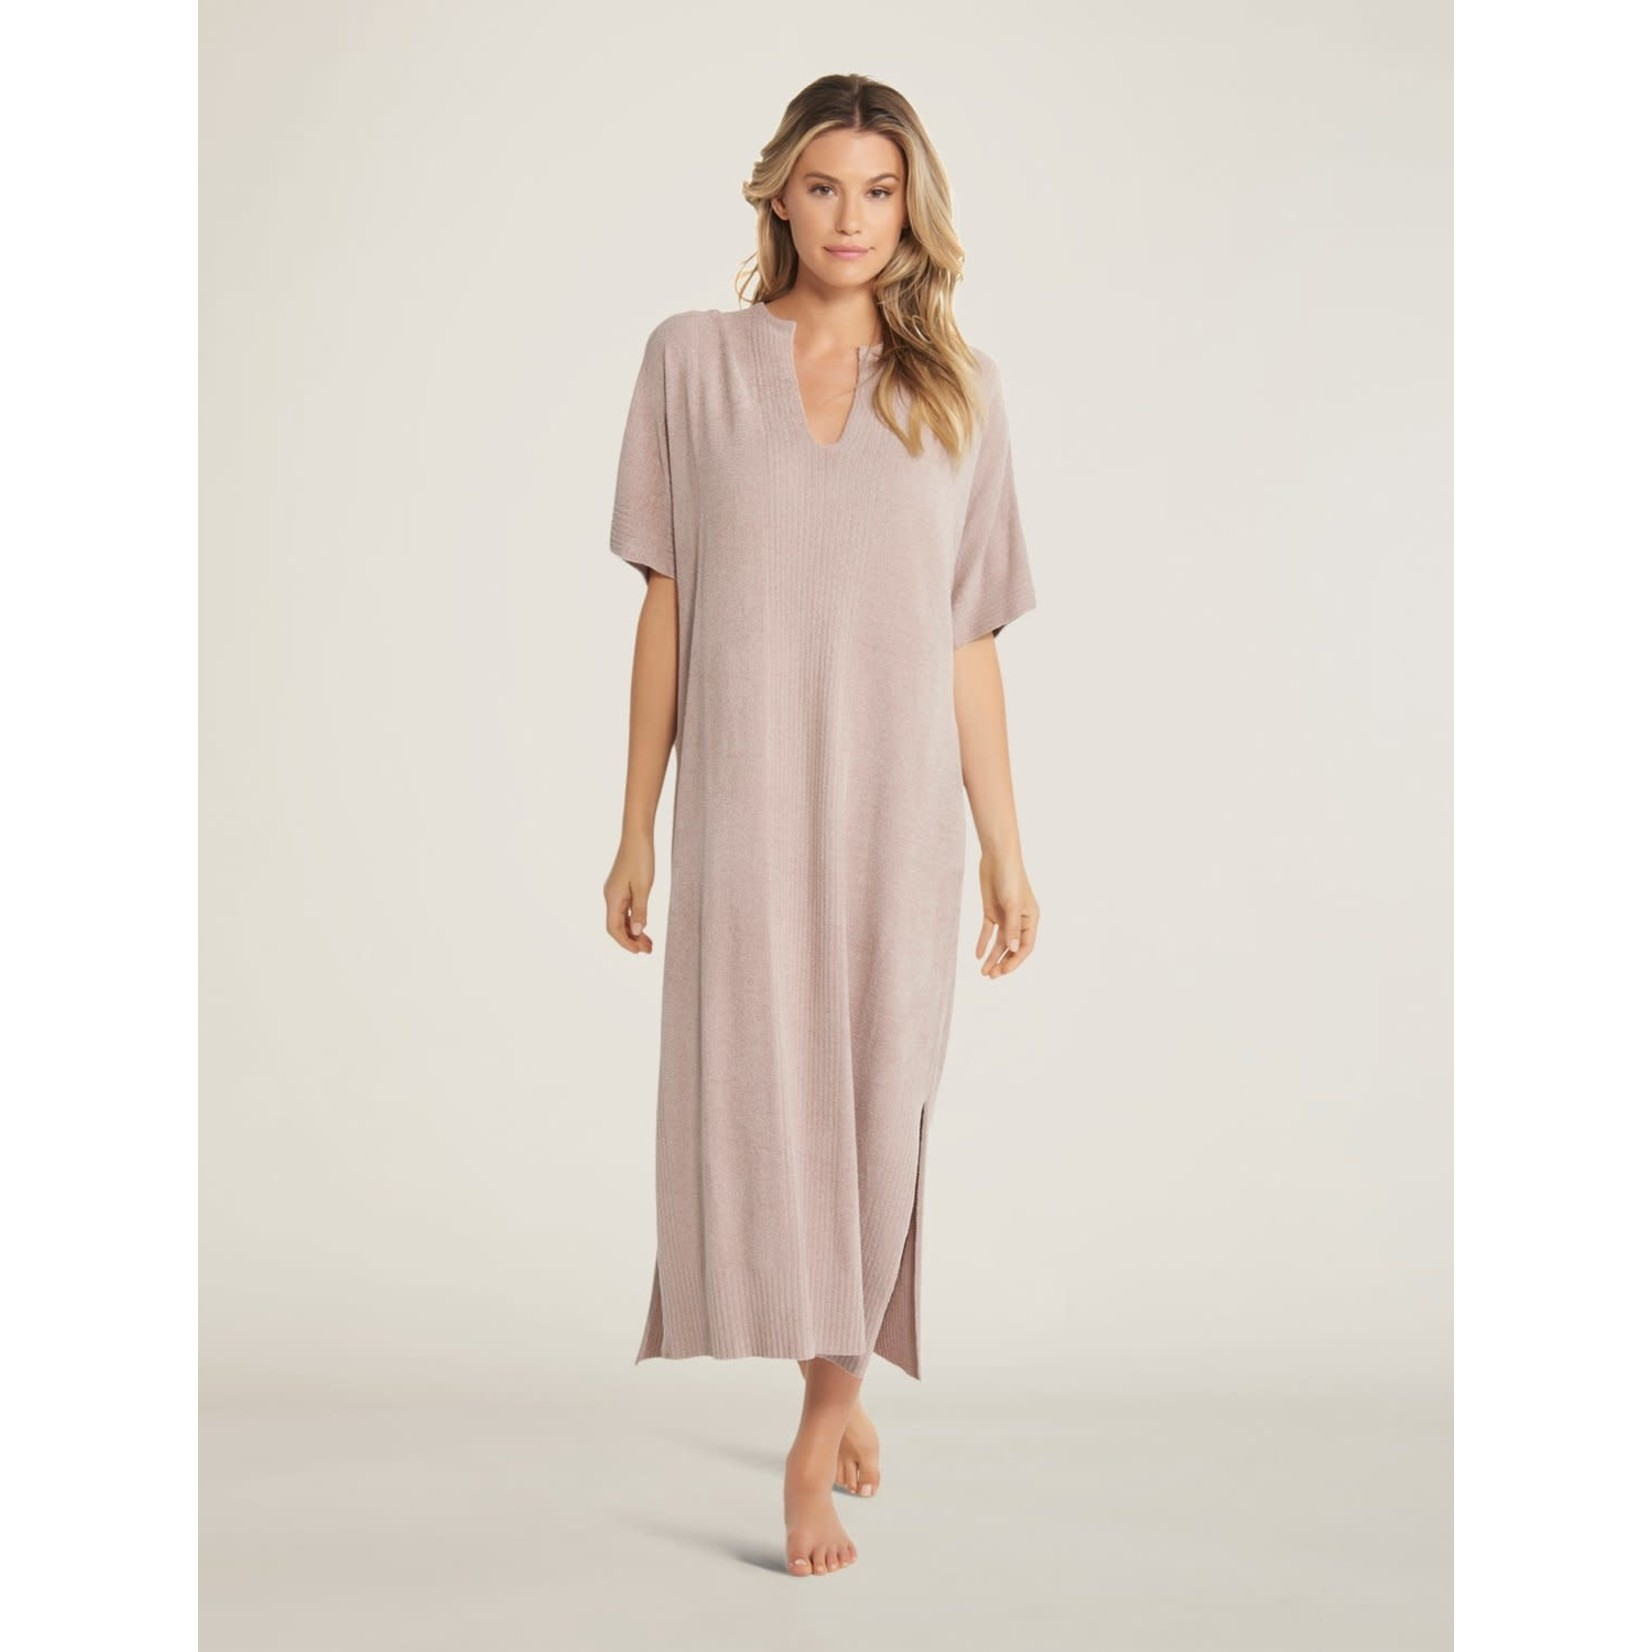 Barefoot Dreams CozyChic Ultra Lite Caftan in Faded Rose OS